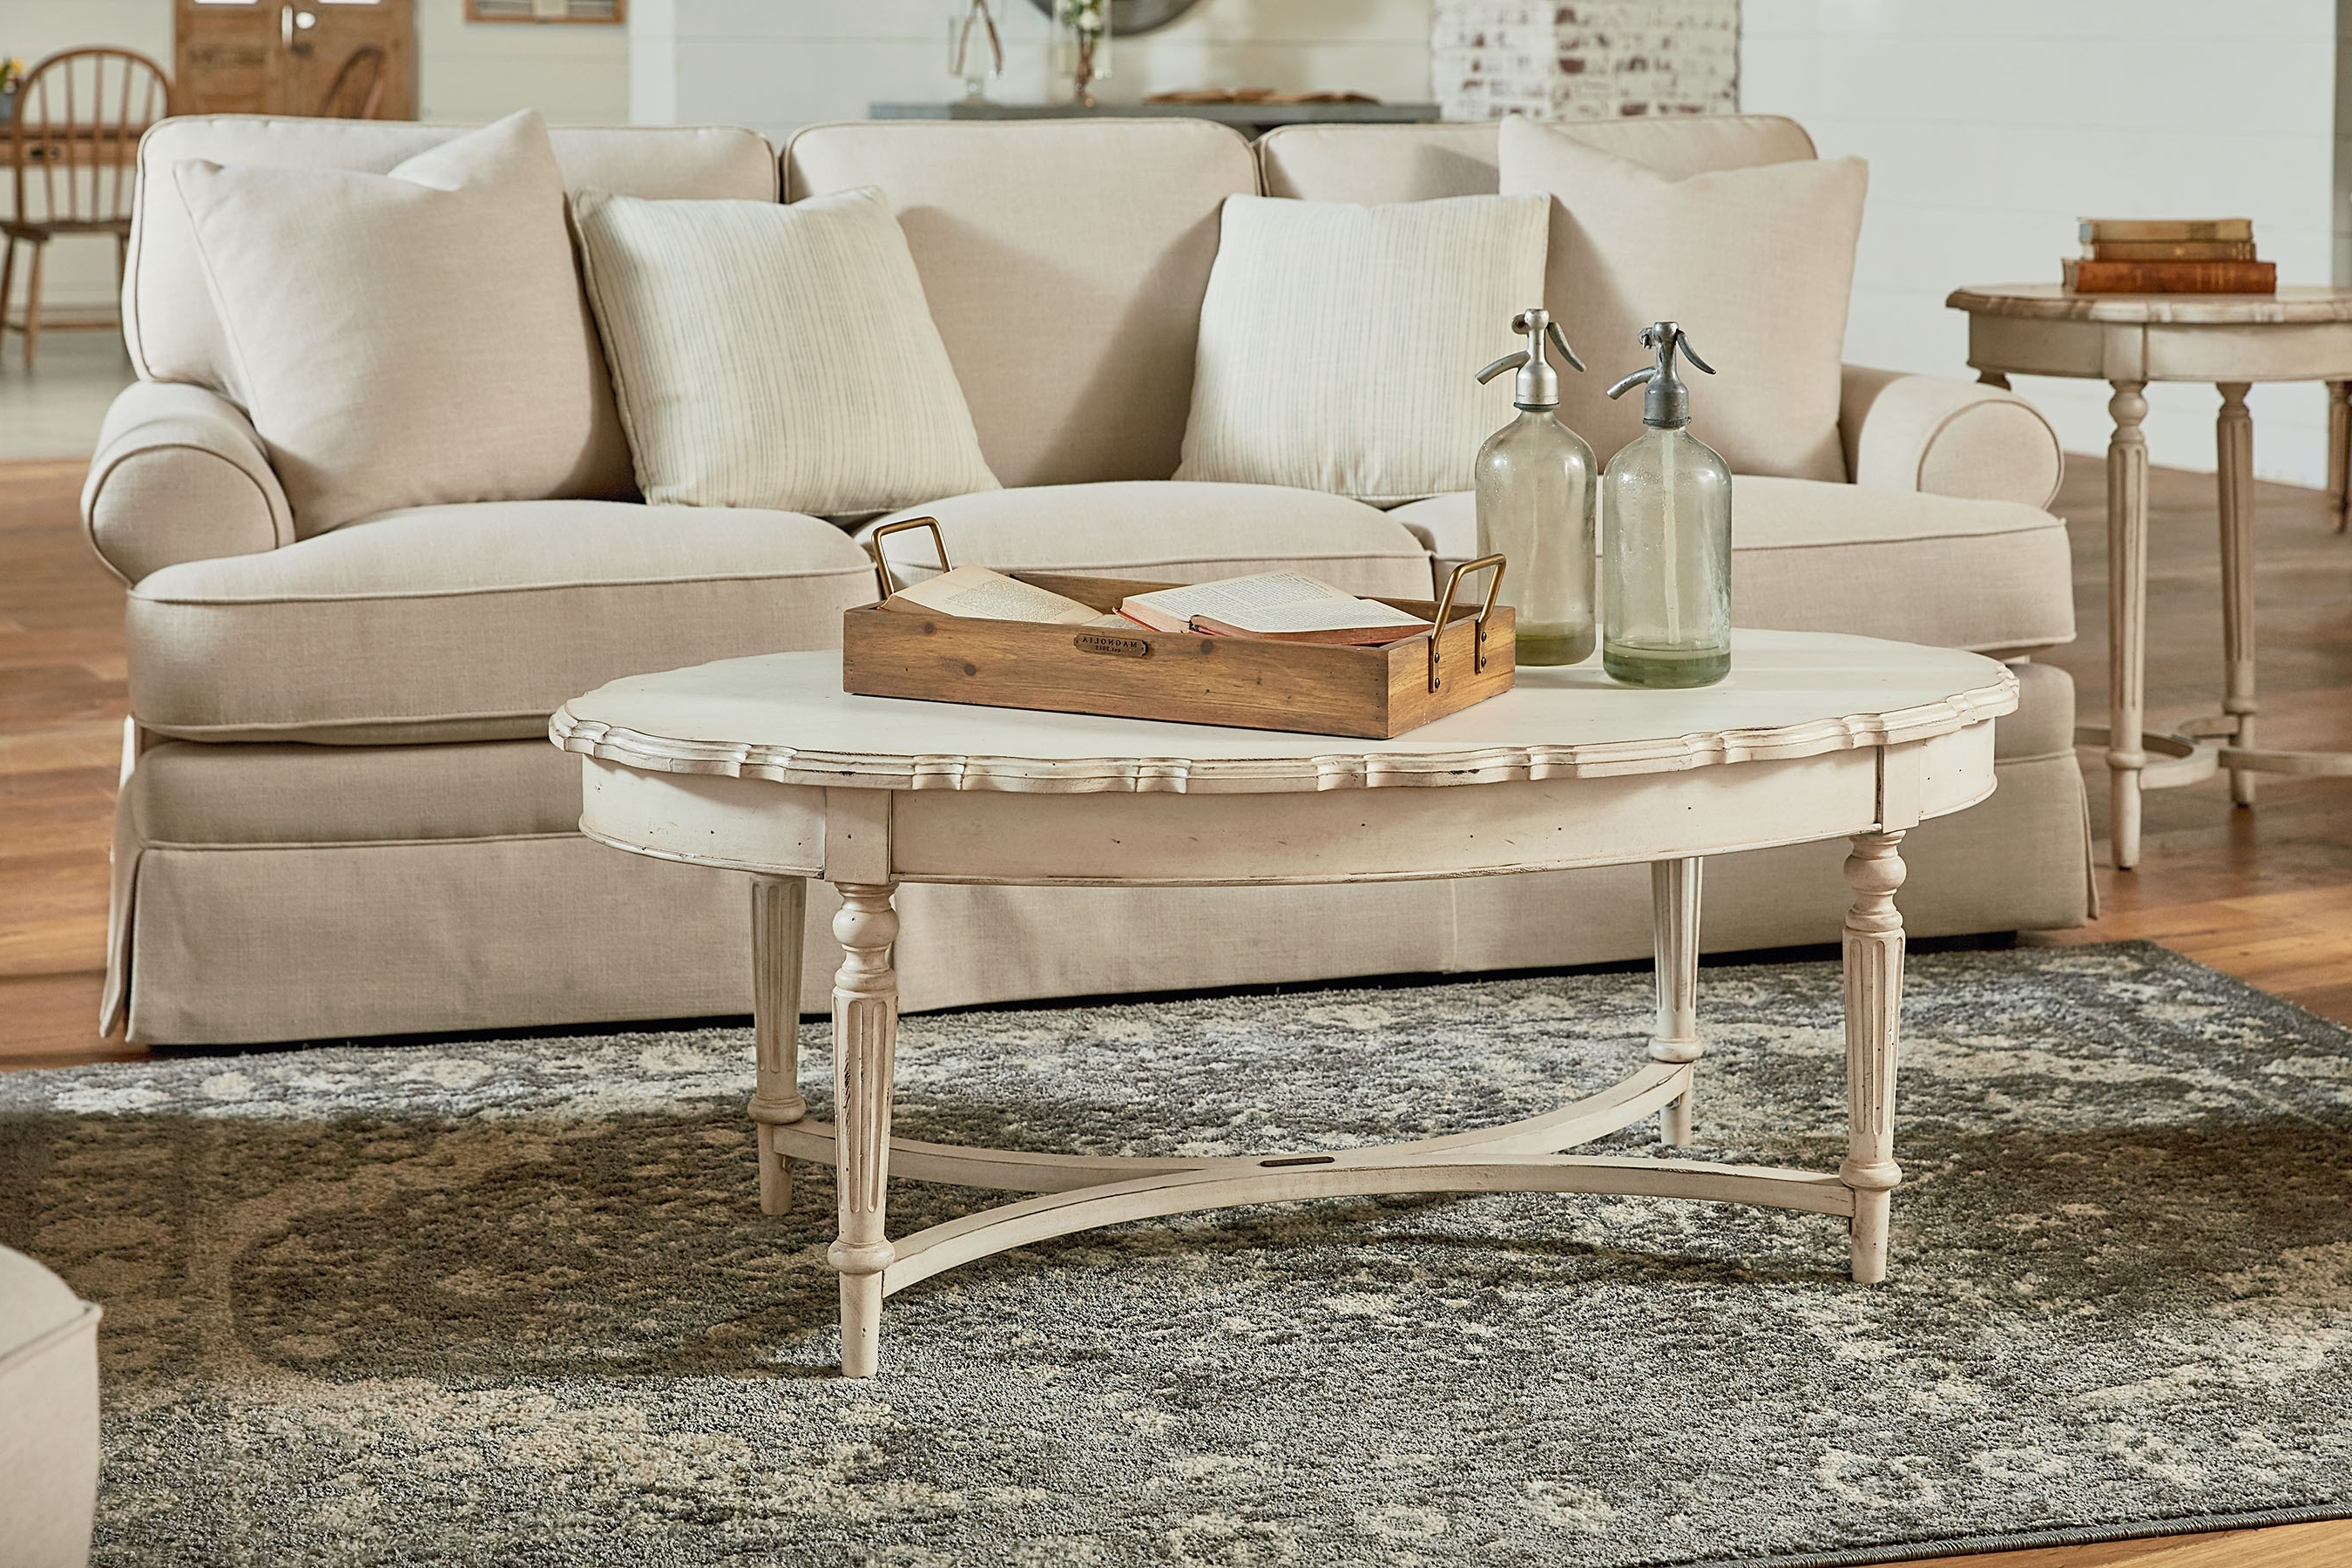 Pie Crust Coffee Table – Magnolia Home With 2018 Magnolia Home Ellipse Cocktail Tables By Joanna Gaines (View 4 of 20)